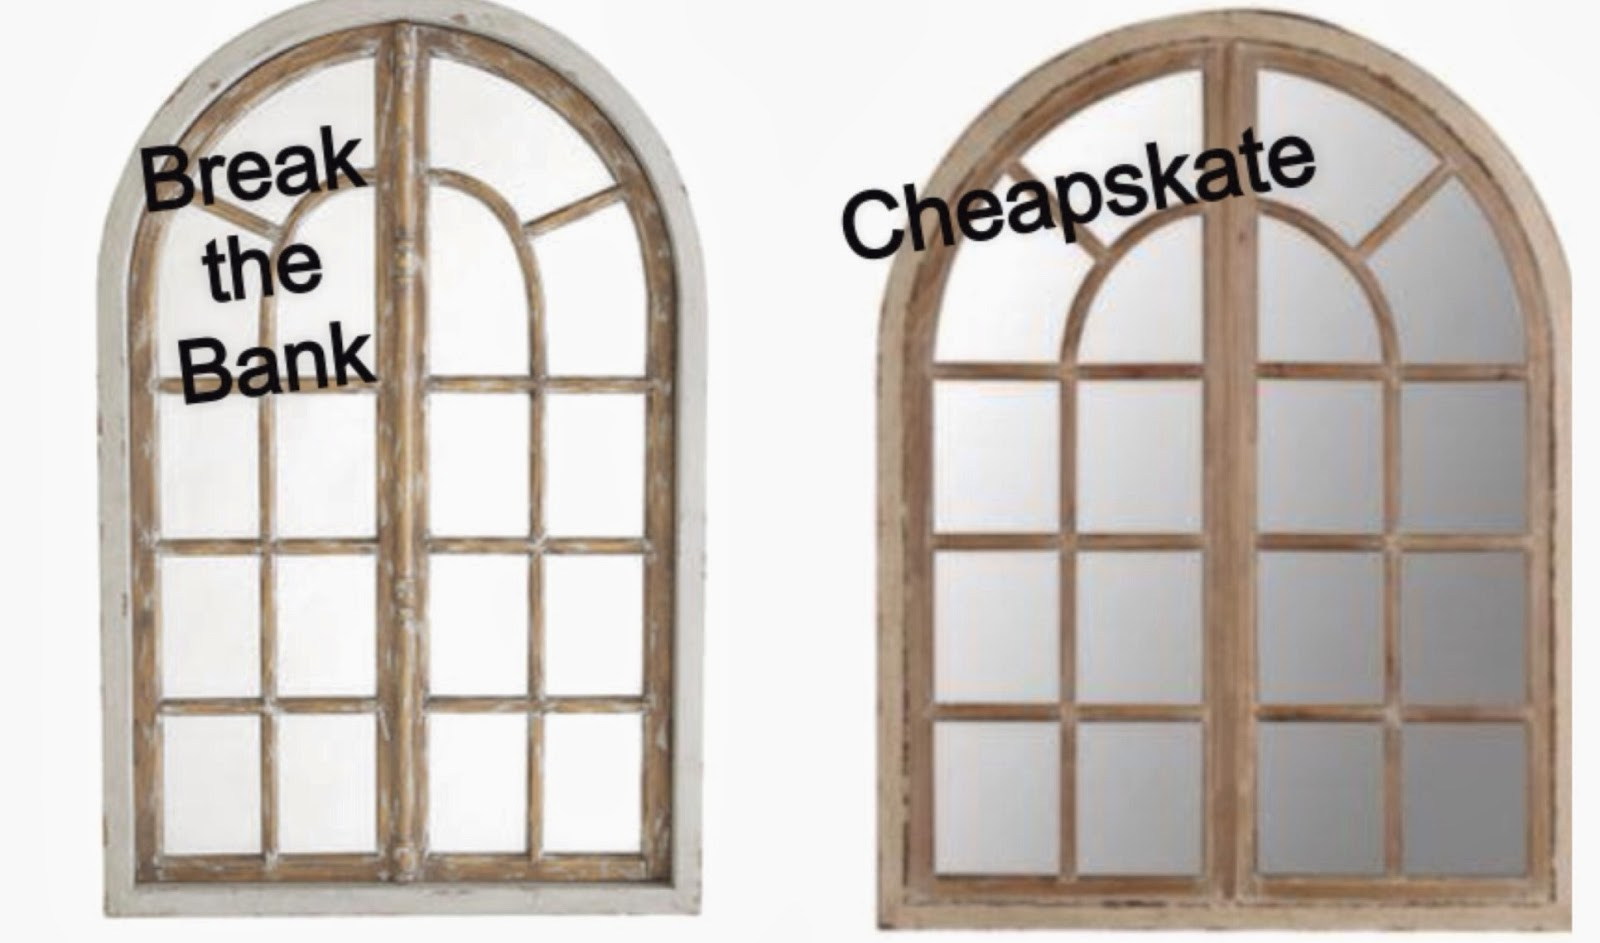 Best whimsy girl: Break the Bank vs. Cheapskate {Arch Window Frame Mirror} VV46